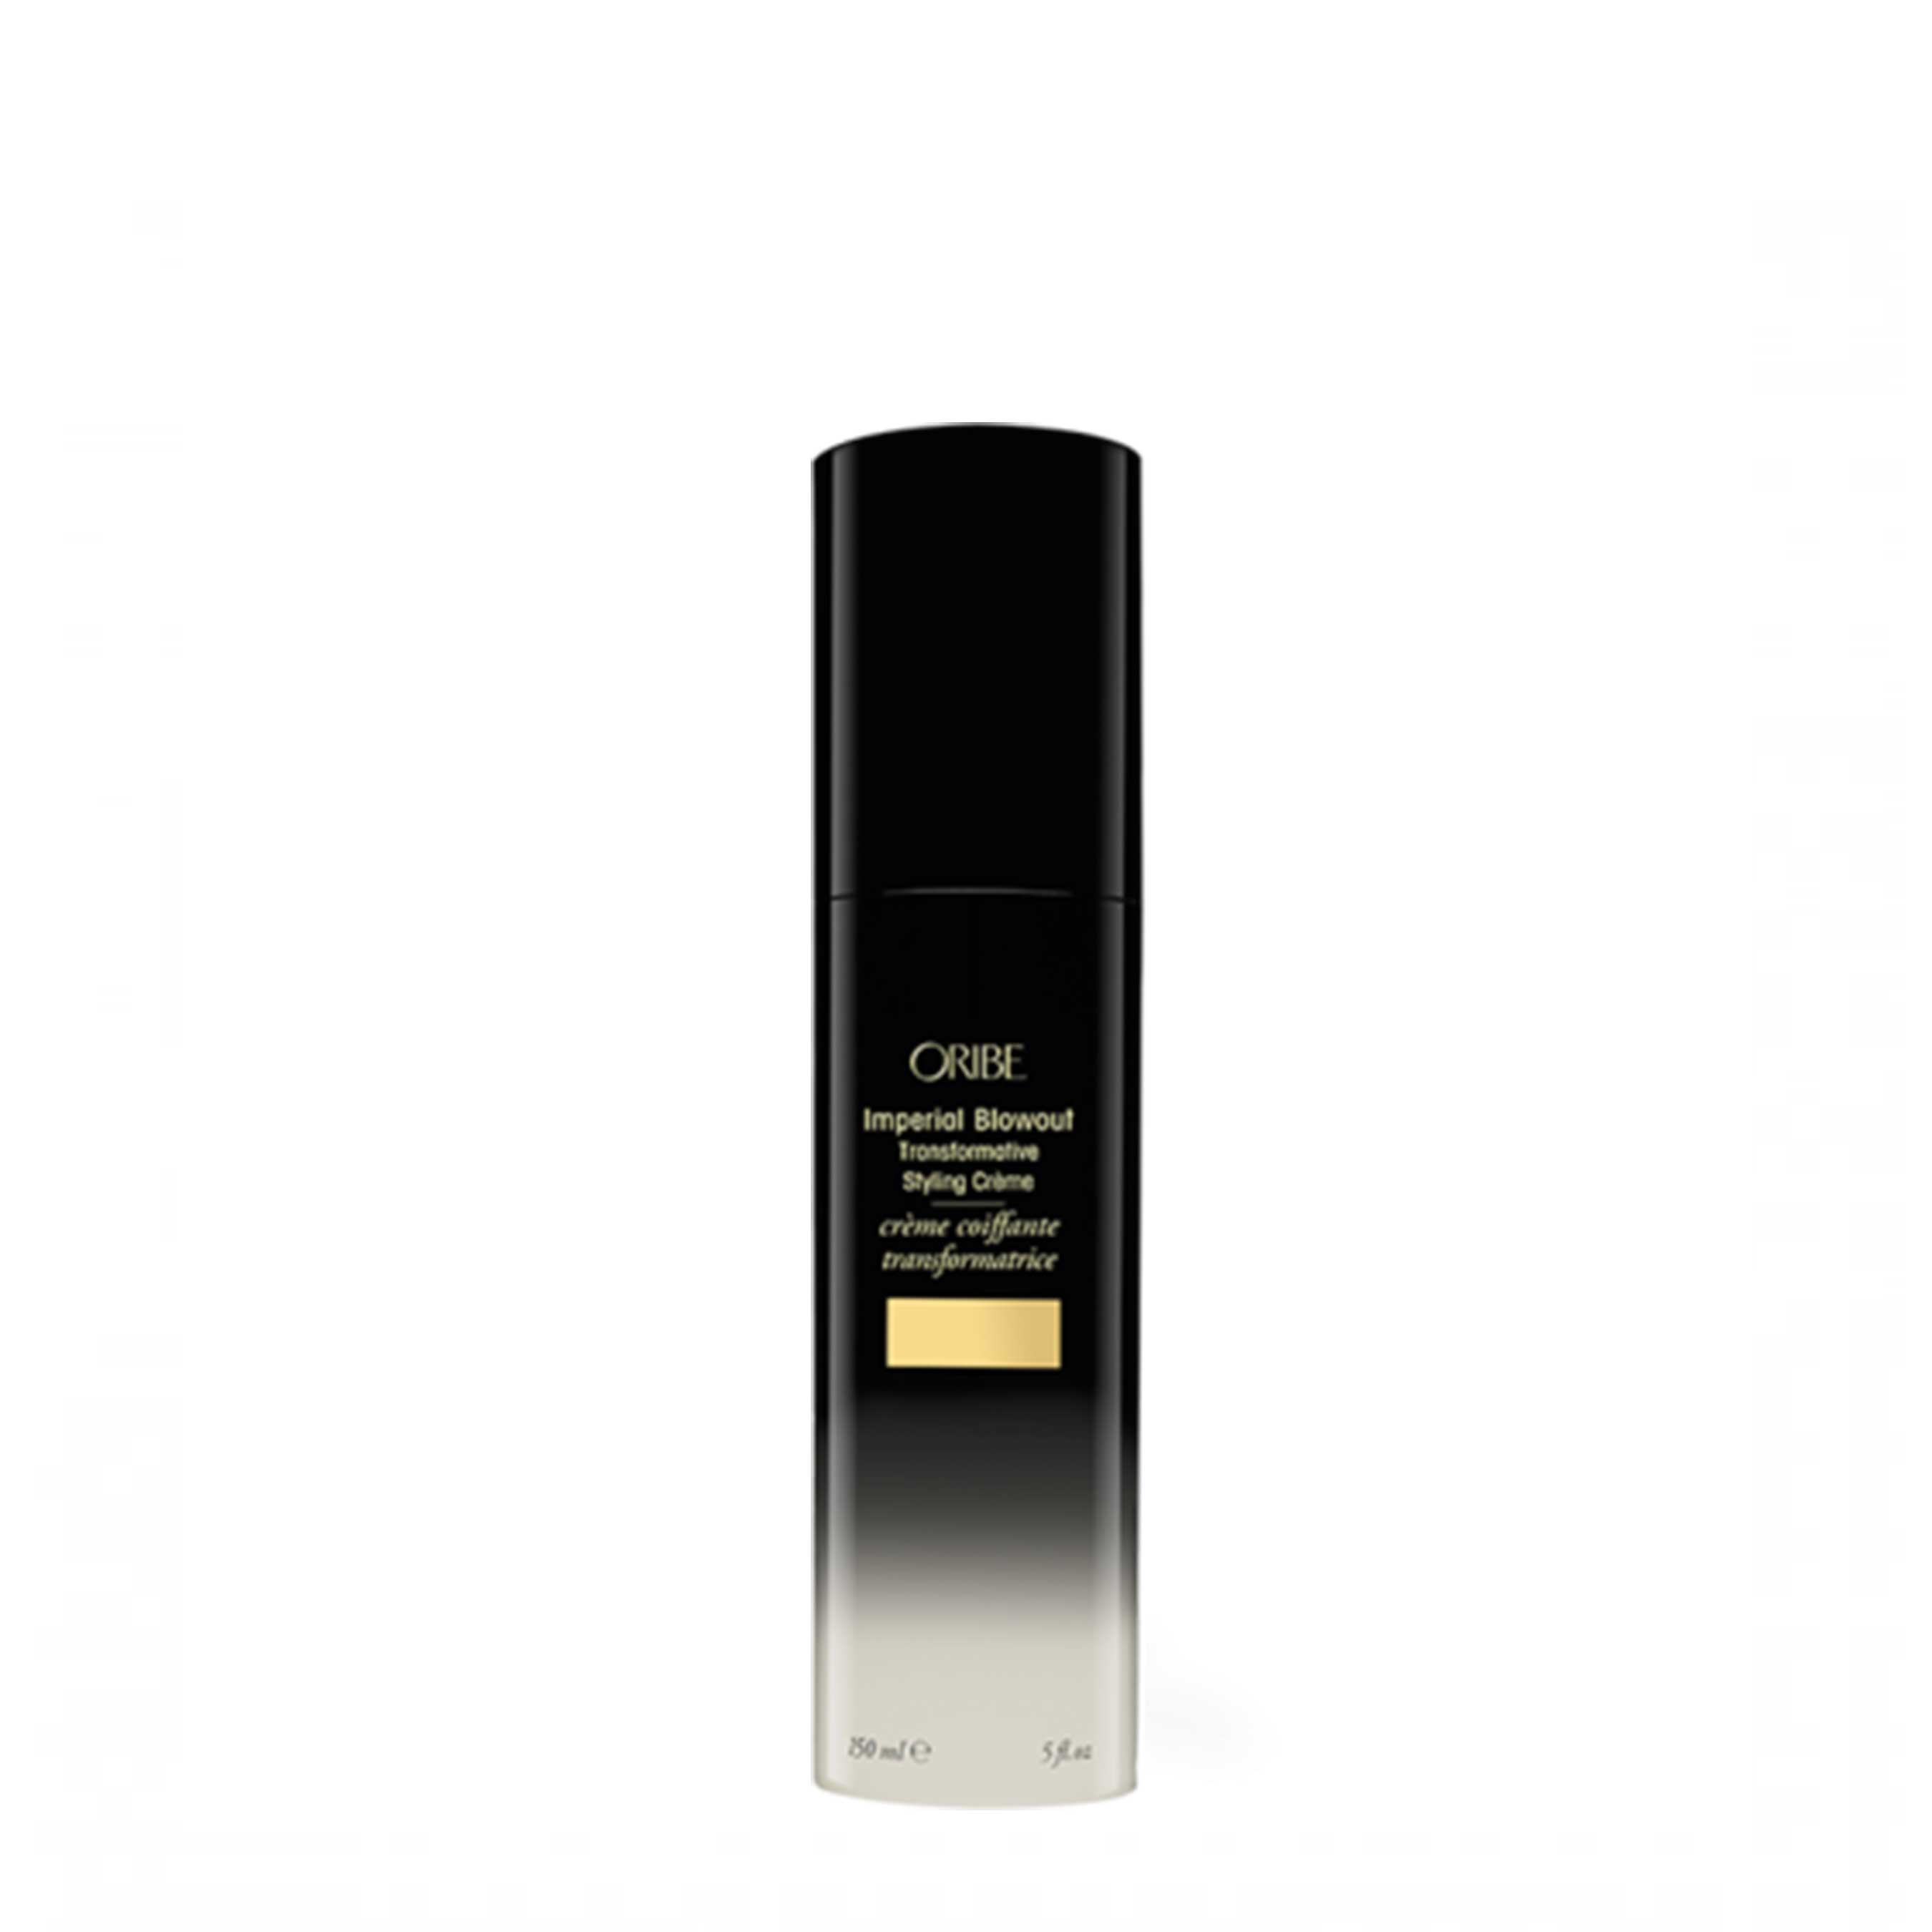 Oribe Imperial